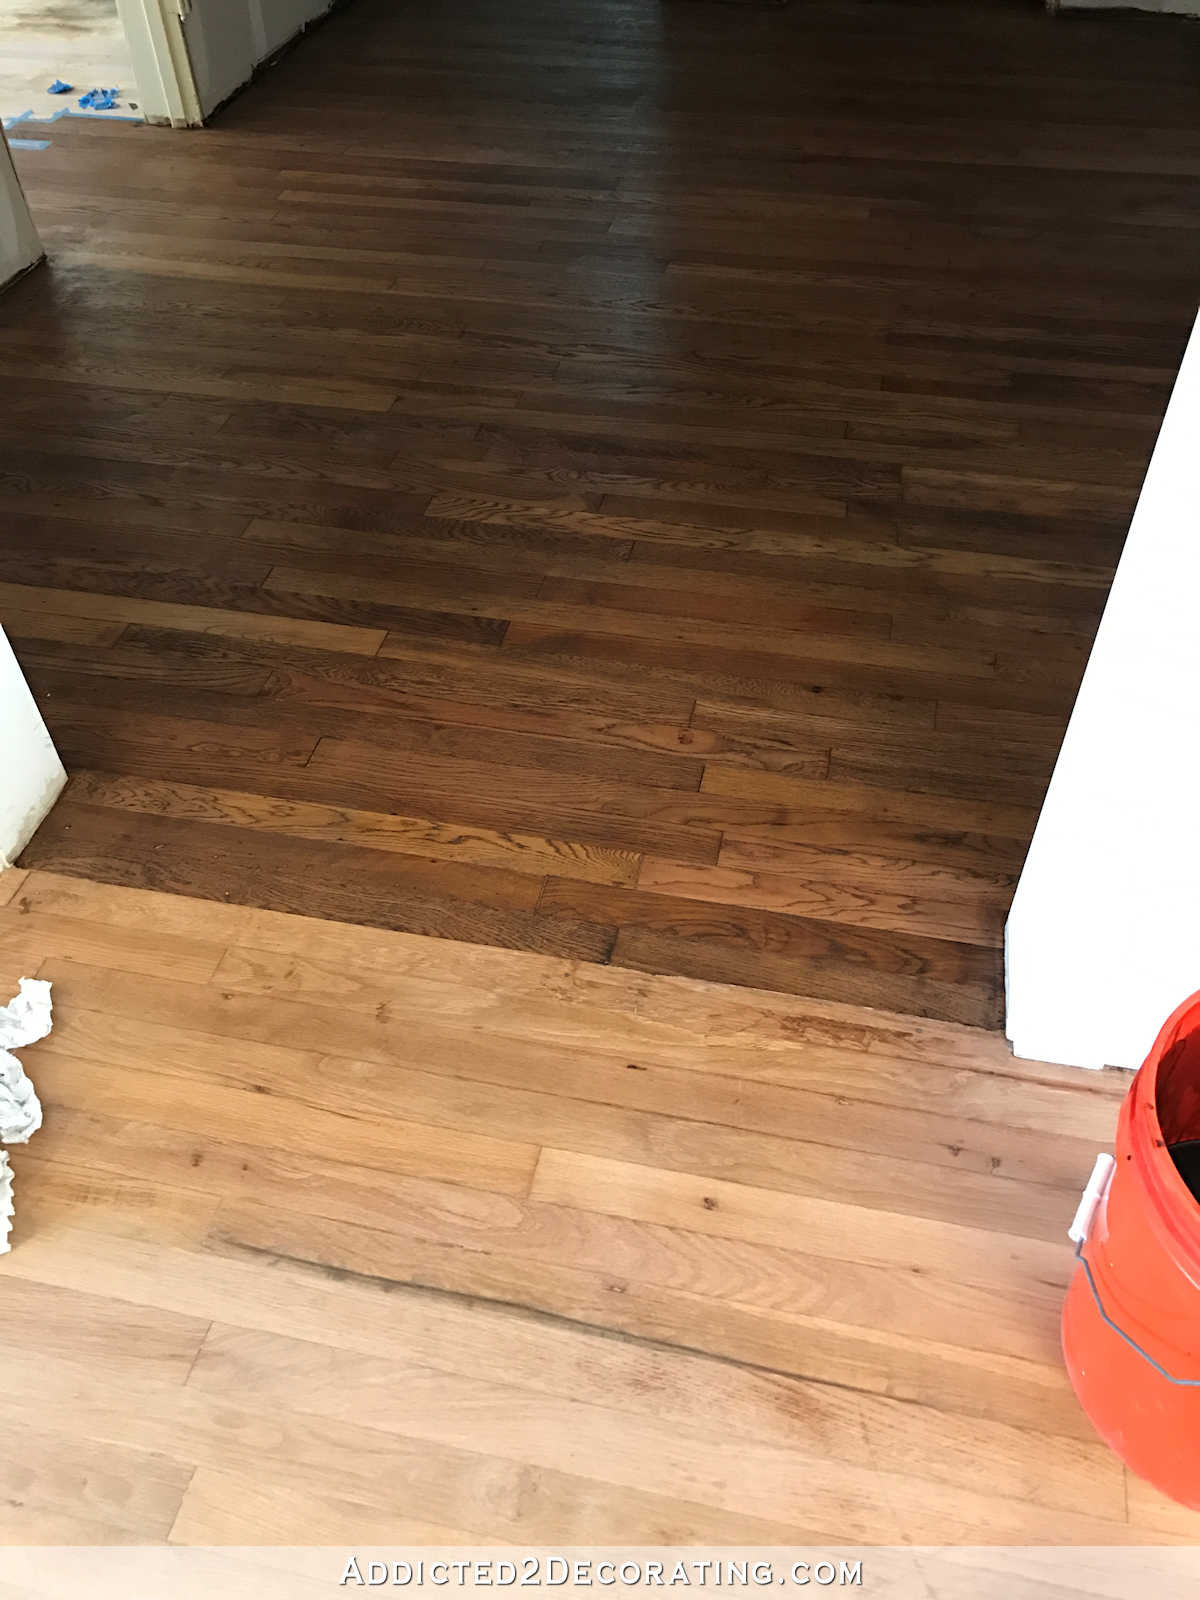 Hardwood Flooring Manufacturing Process Of Adventures In Staining My Red Oak Hardwood Floors Products Process Throughout Staining Red Oak Hardwood Floors 2 Tape Off One Section at A Time for